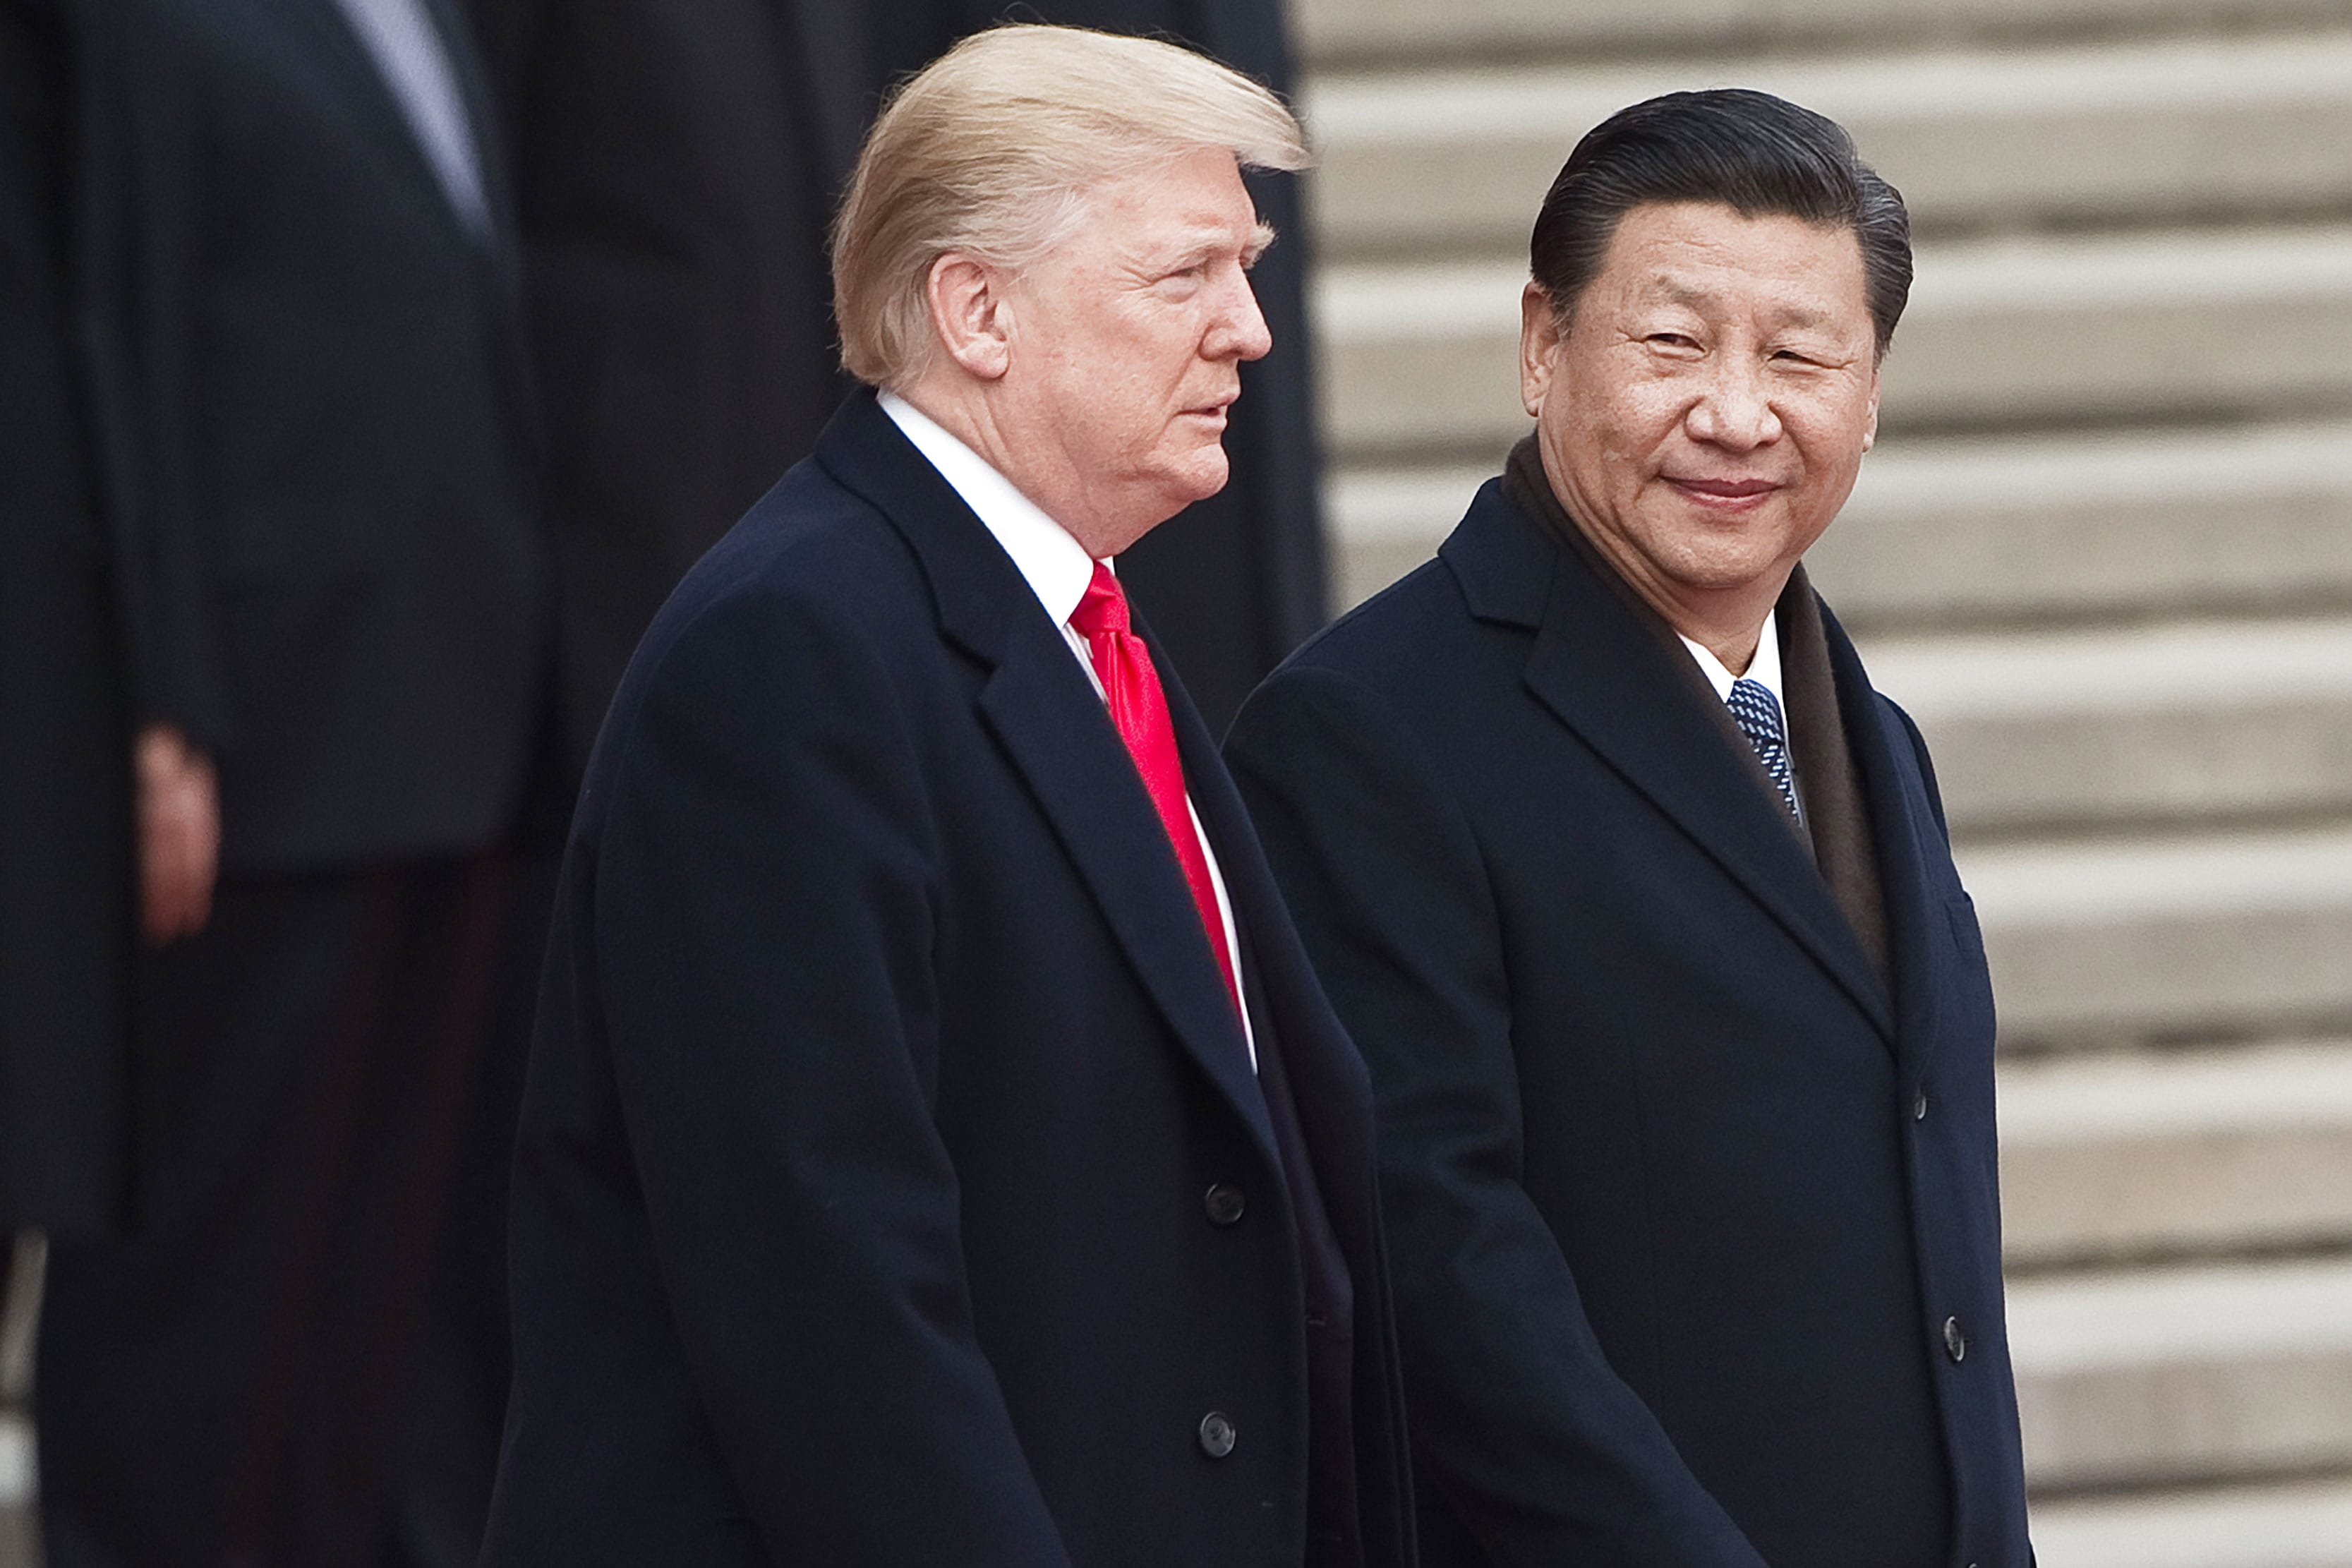 Here's what every major Wall Street bank believes will happen at the Trump-Xi trade meeting